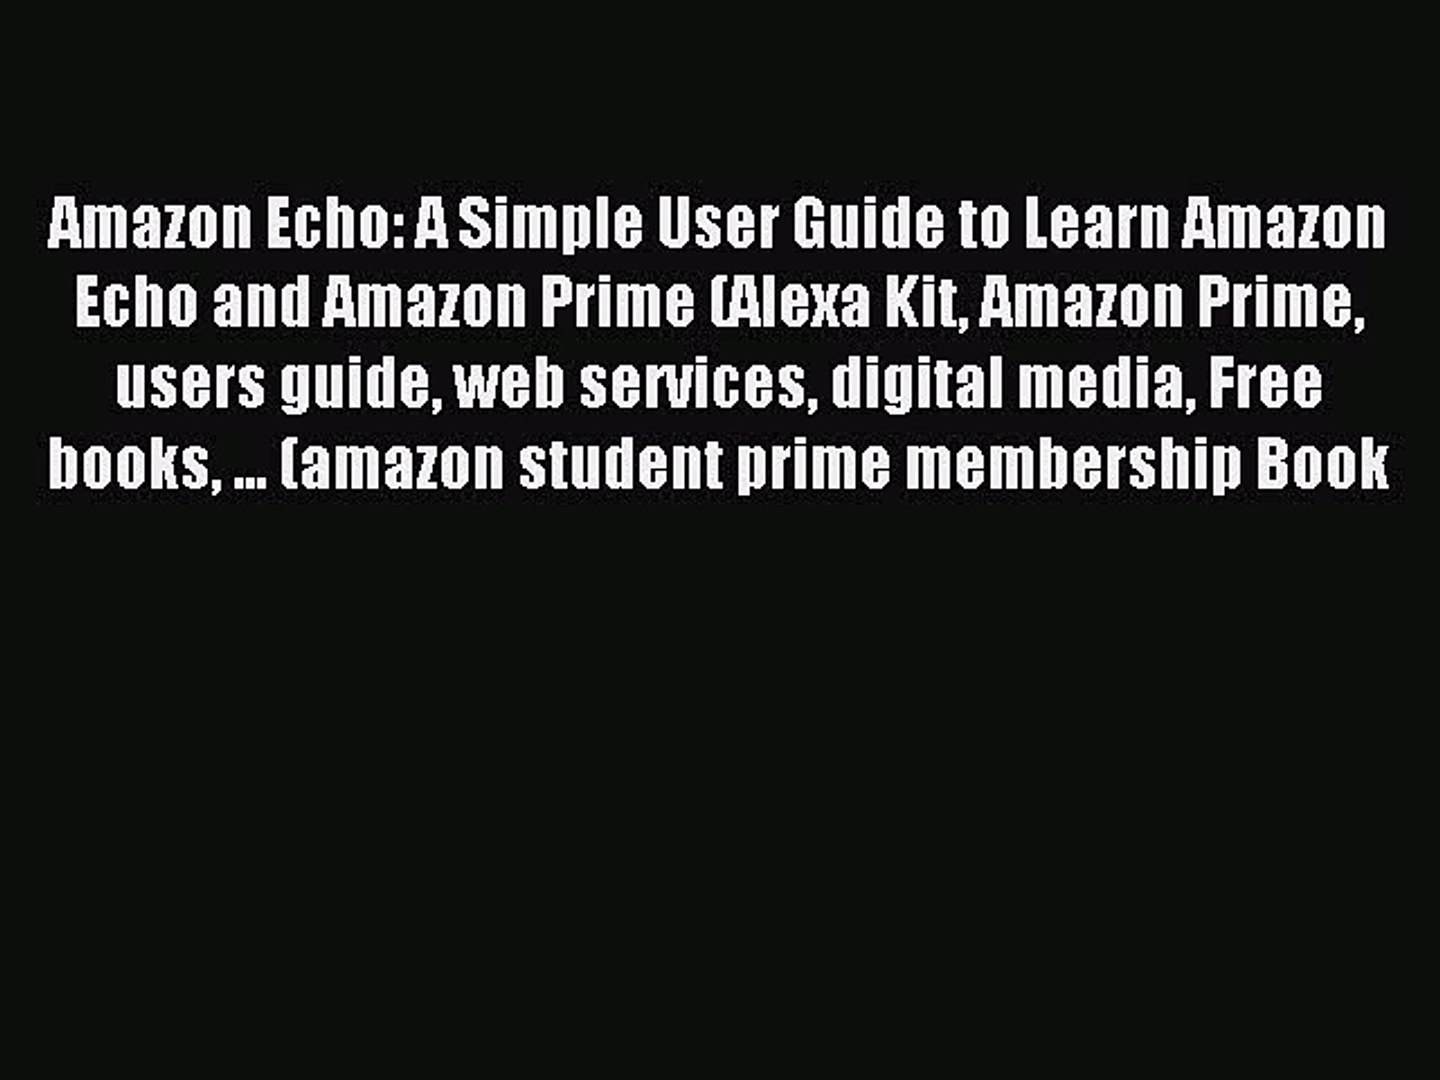 Download Amazon Echo: A Simple User Guide to Learn Amazon Echo and Amazon Prime (Alexa Kit